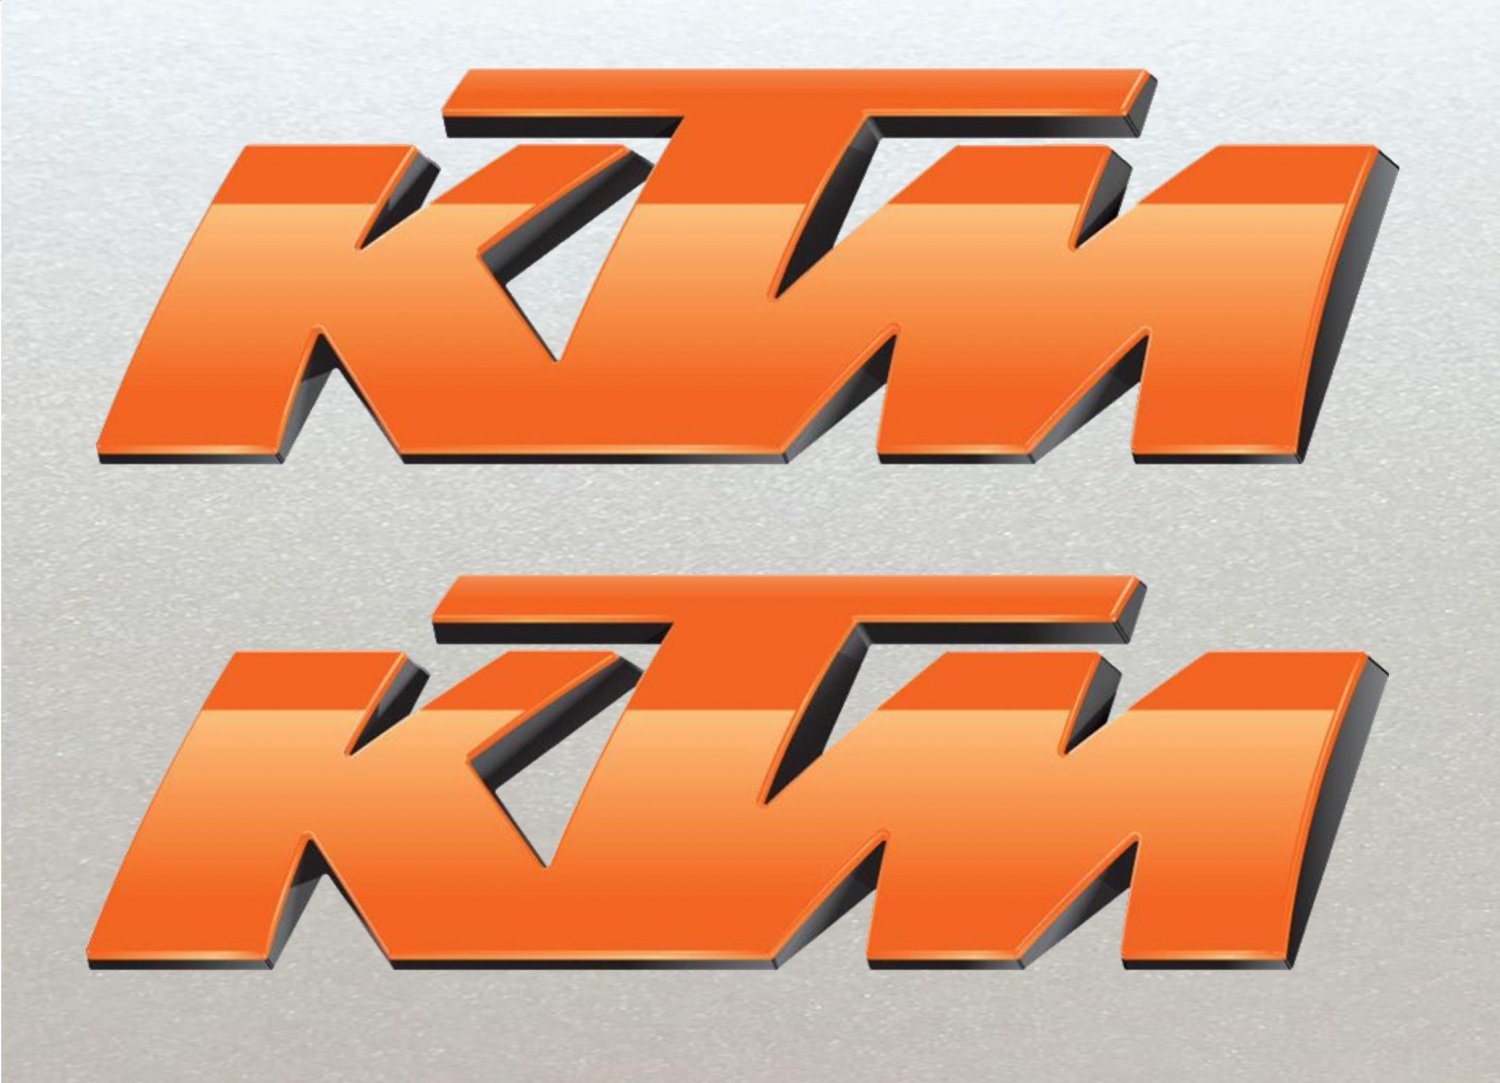 2 X large KTM Cutout Stickers for Fairing, Tank, Wheels etc, (Laminated high Quality) 21cm